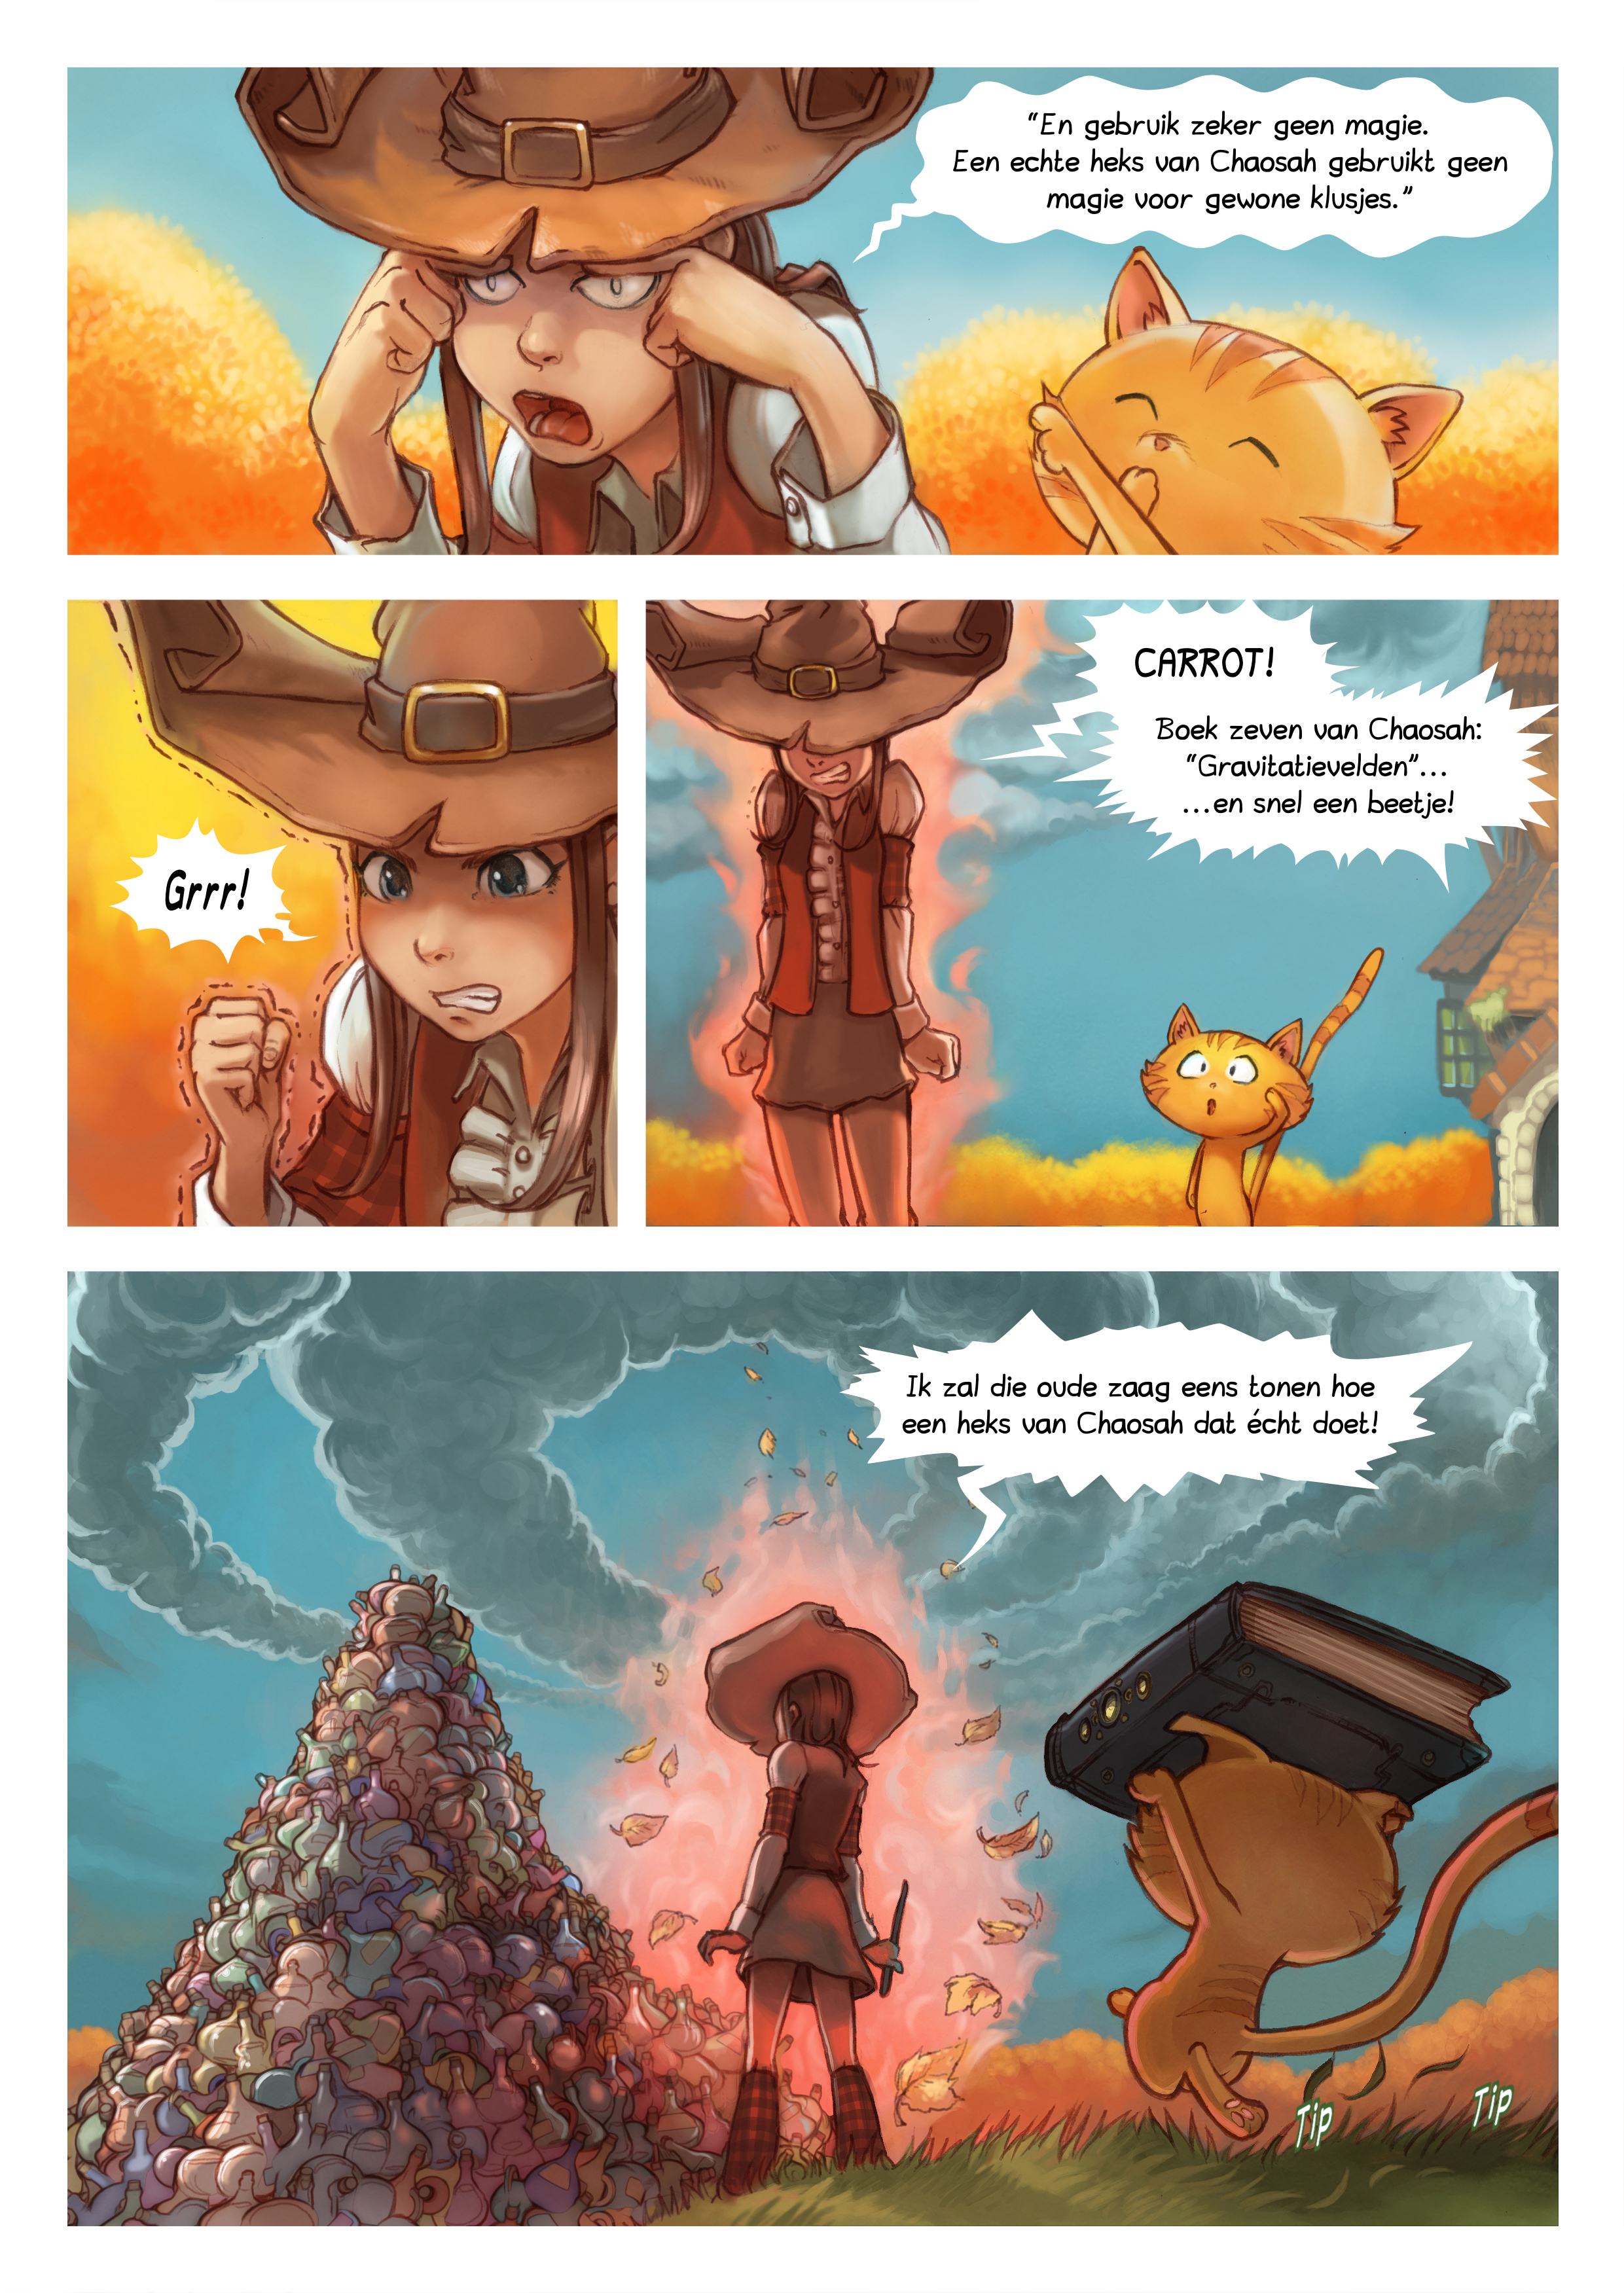 A webcomic page of Pepper&Carrot, aflevering 12 [nl], pagina 3